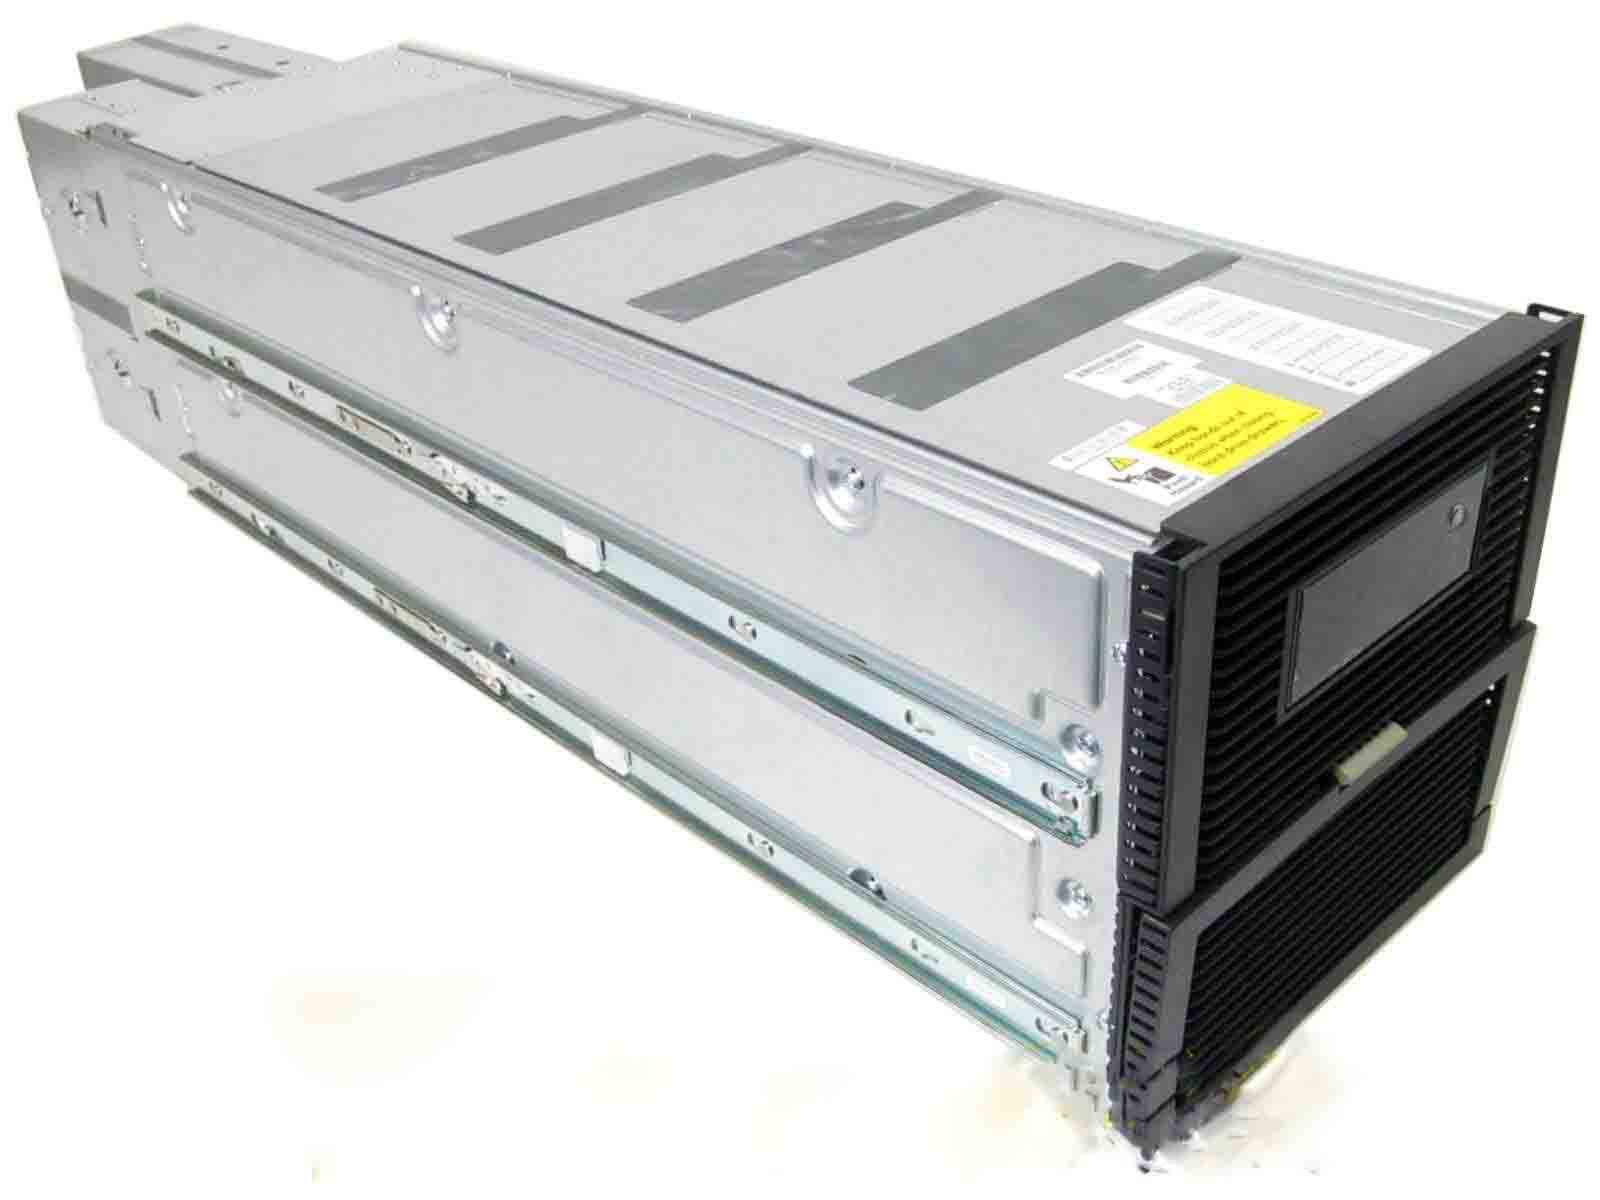 Hard drive drawer with hard drive backplane and cables